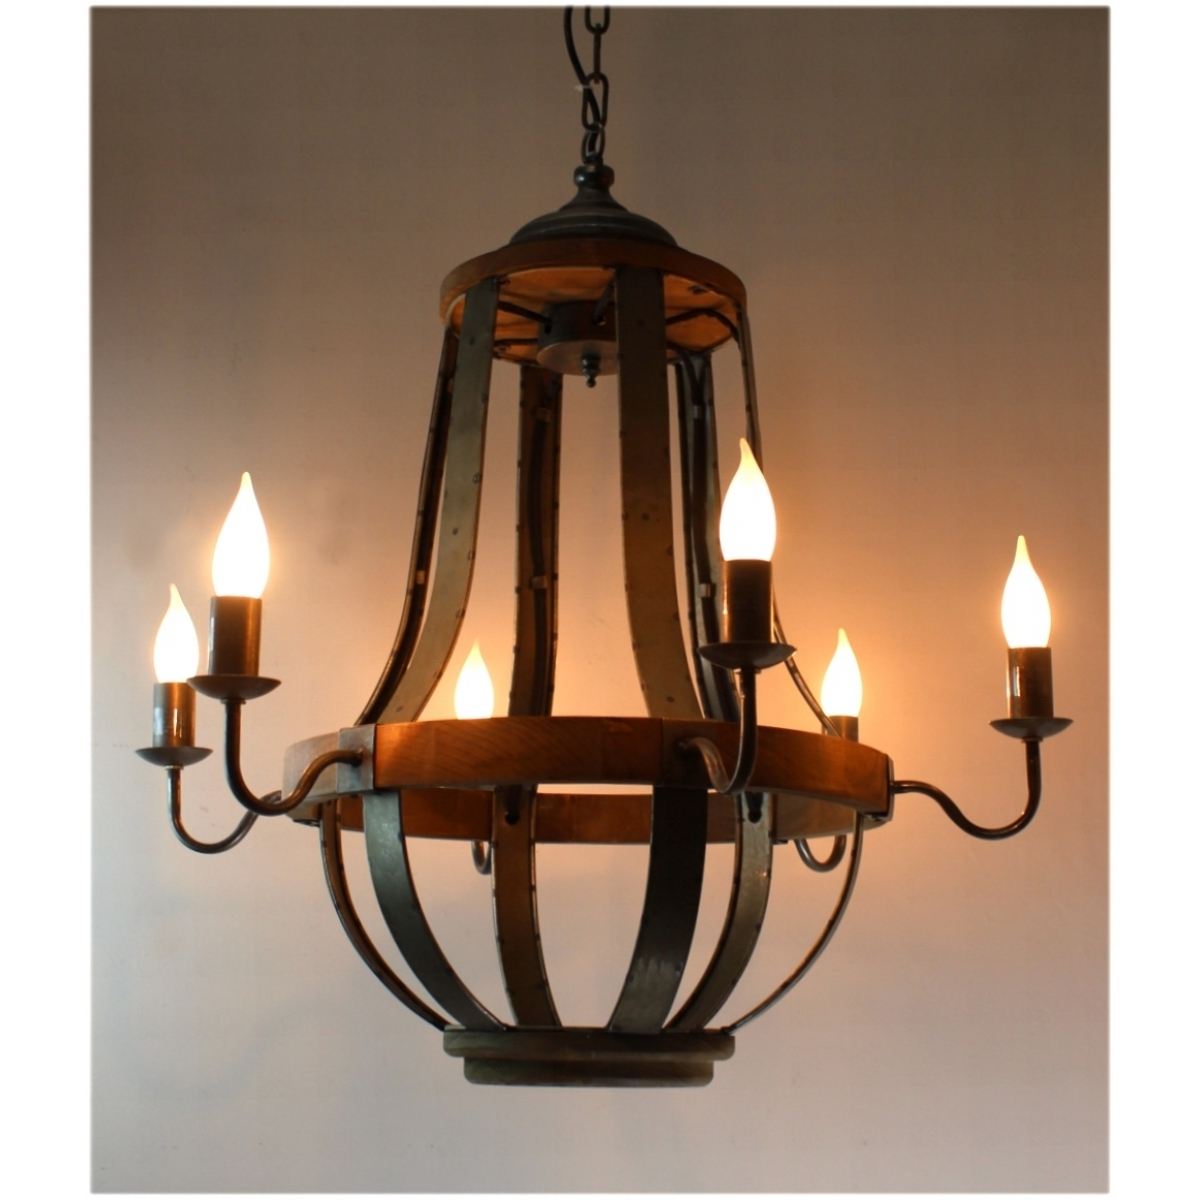 Vintage Style Chandeliers Throughout 2018 $579 Iron Strap And Aged Wood Chandelier French Country Vintage (View 18 of 20)